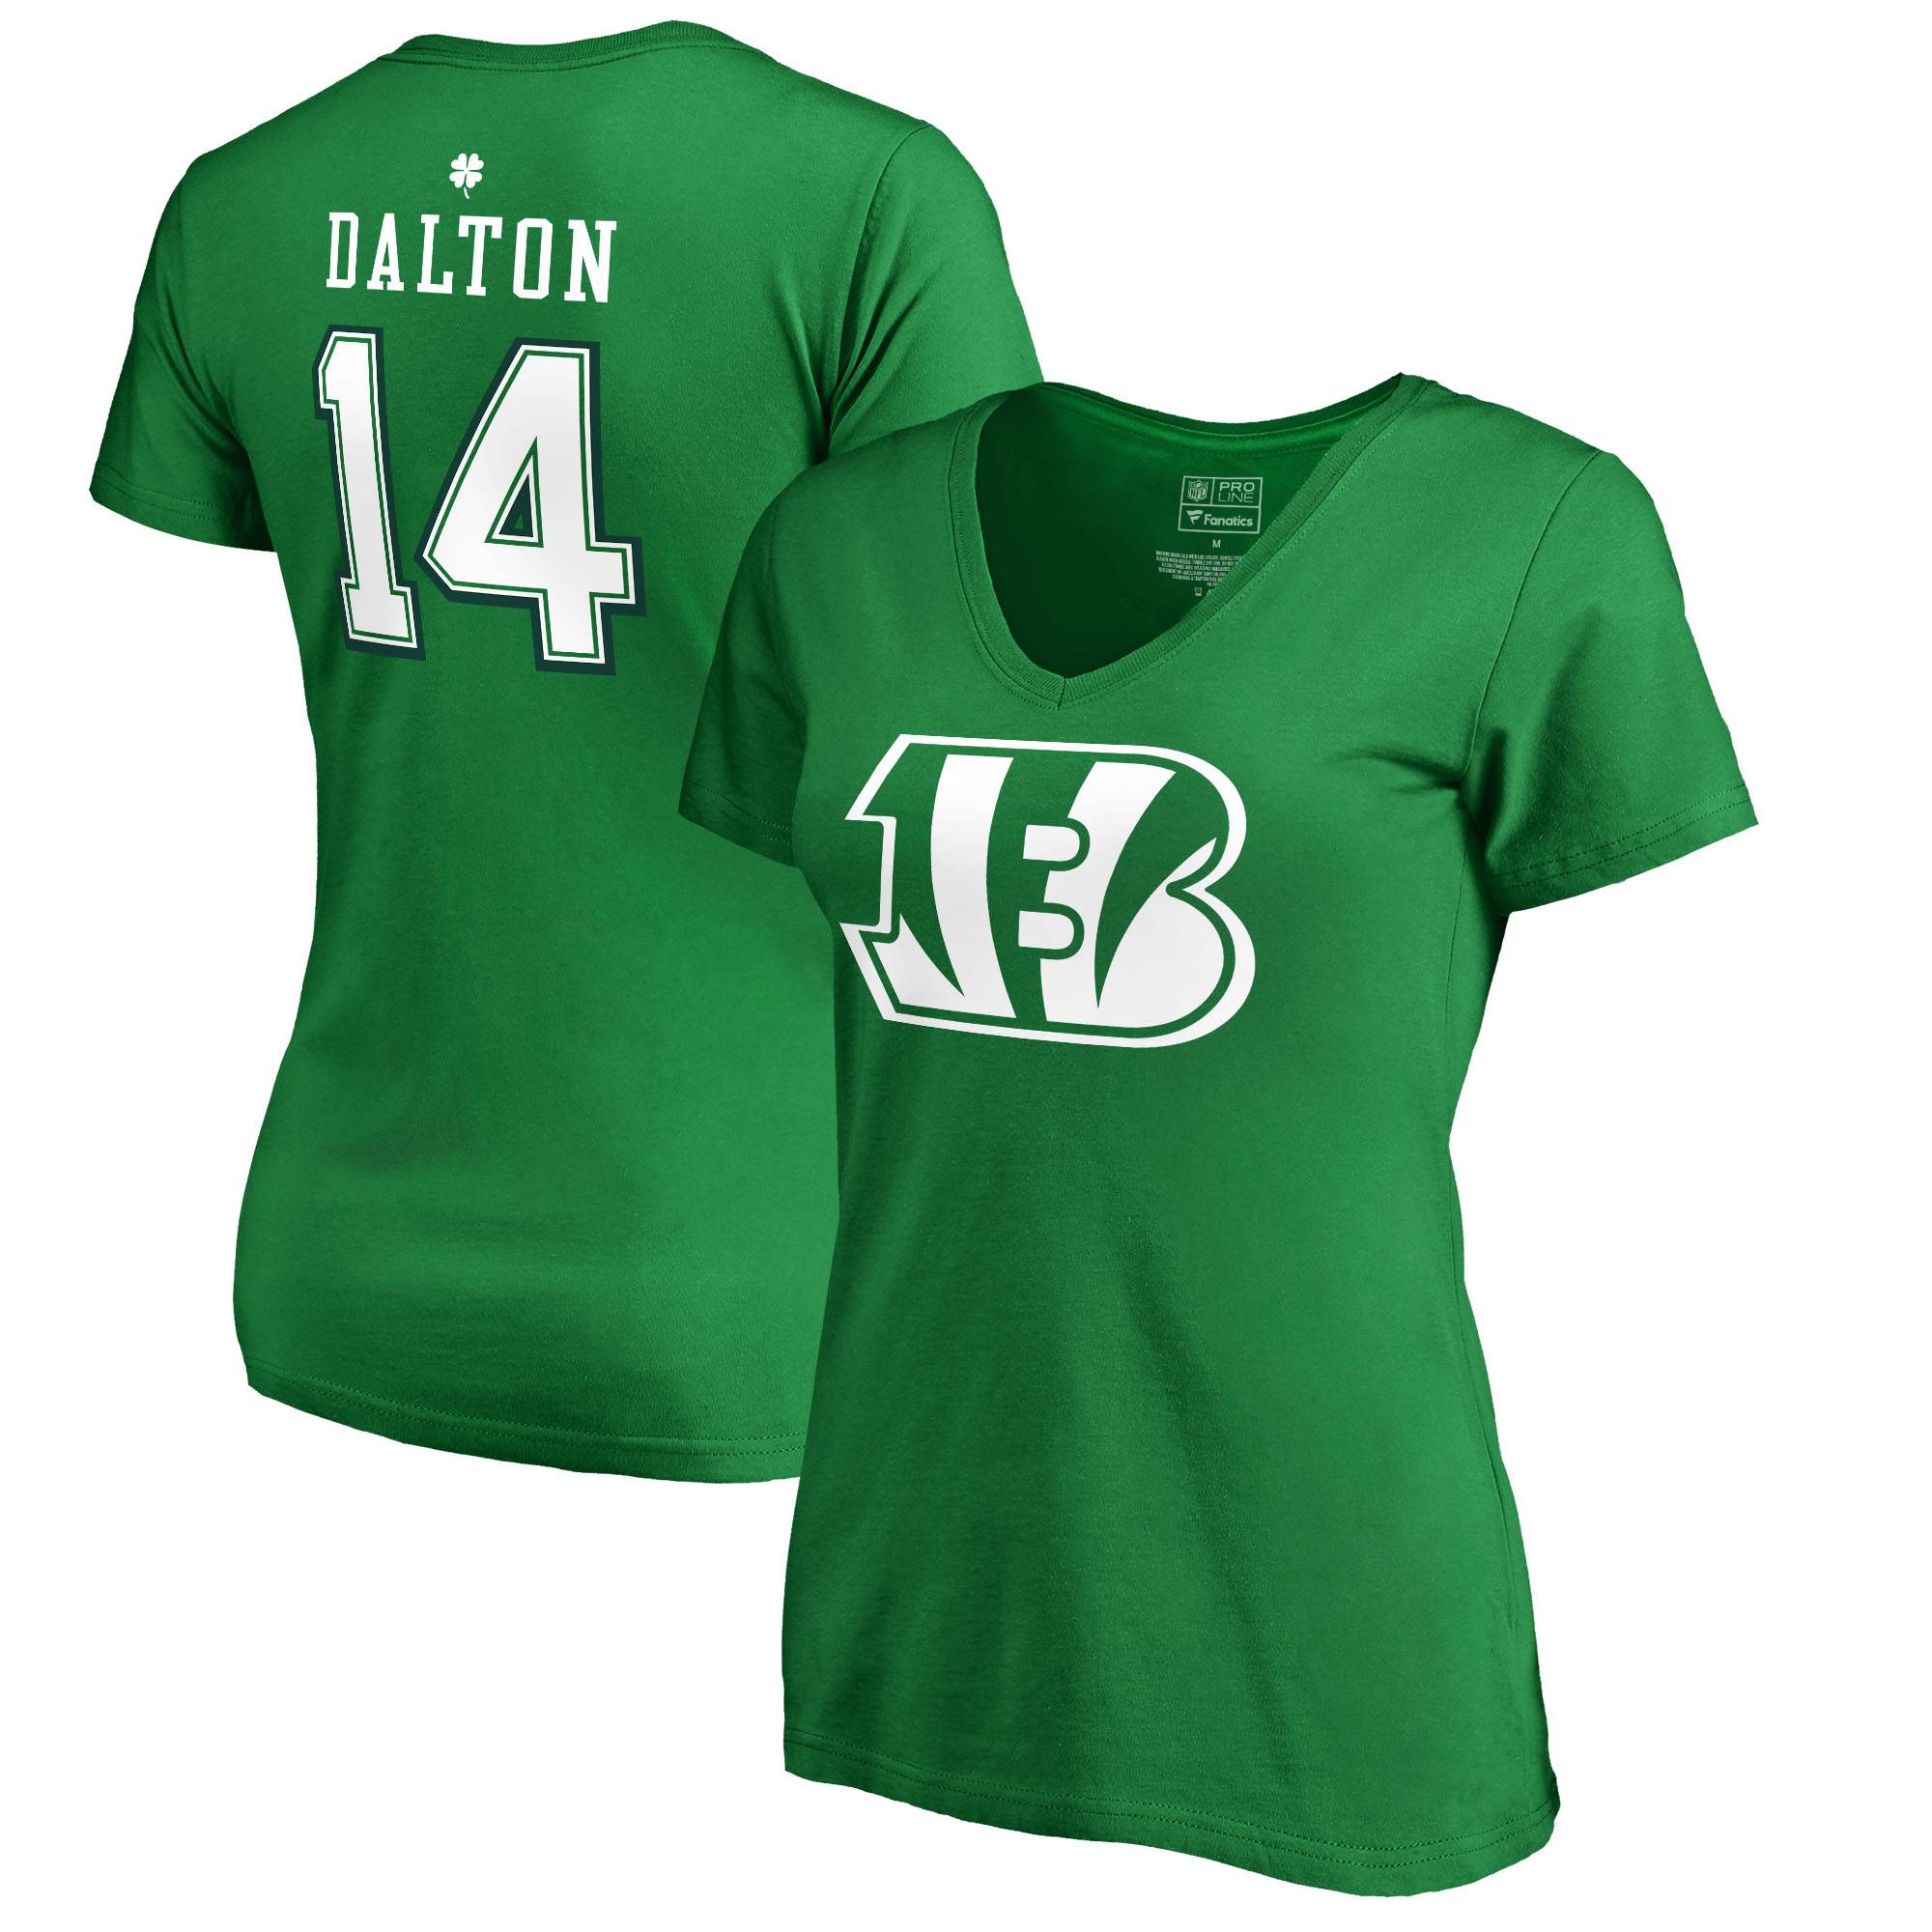 Andy Dalton Cincinnati Bengals NFL Pro Line by Fanatics Branded Women's St. Patrick's Day Icon V-Neck Name & Number T-Shirt - Kelly Green